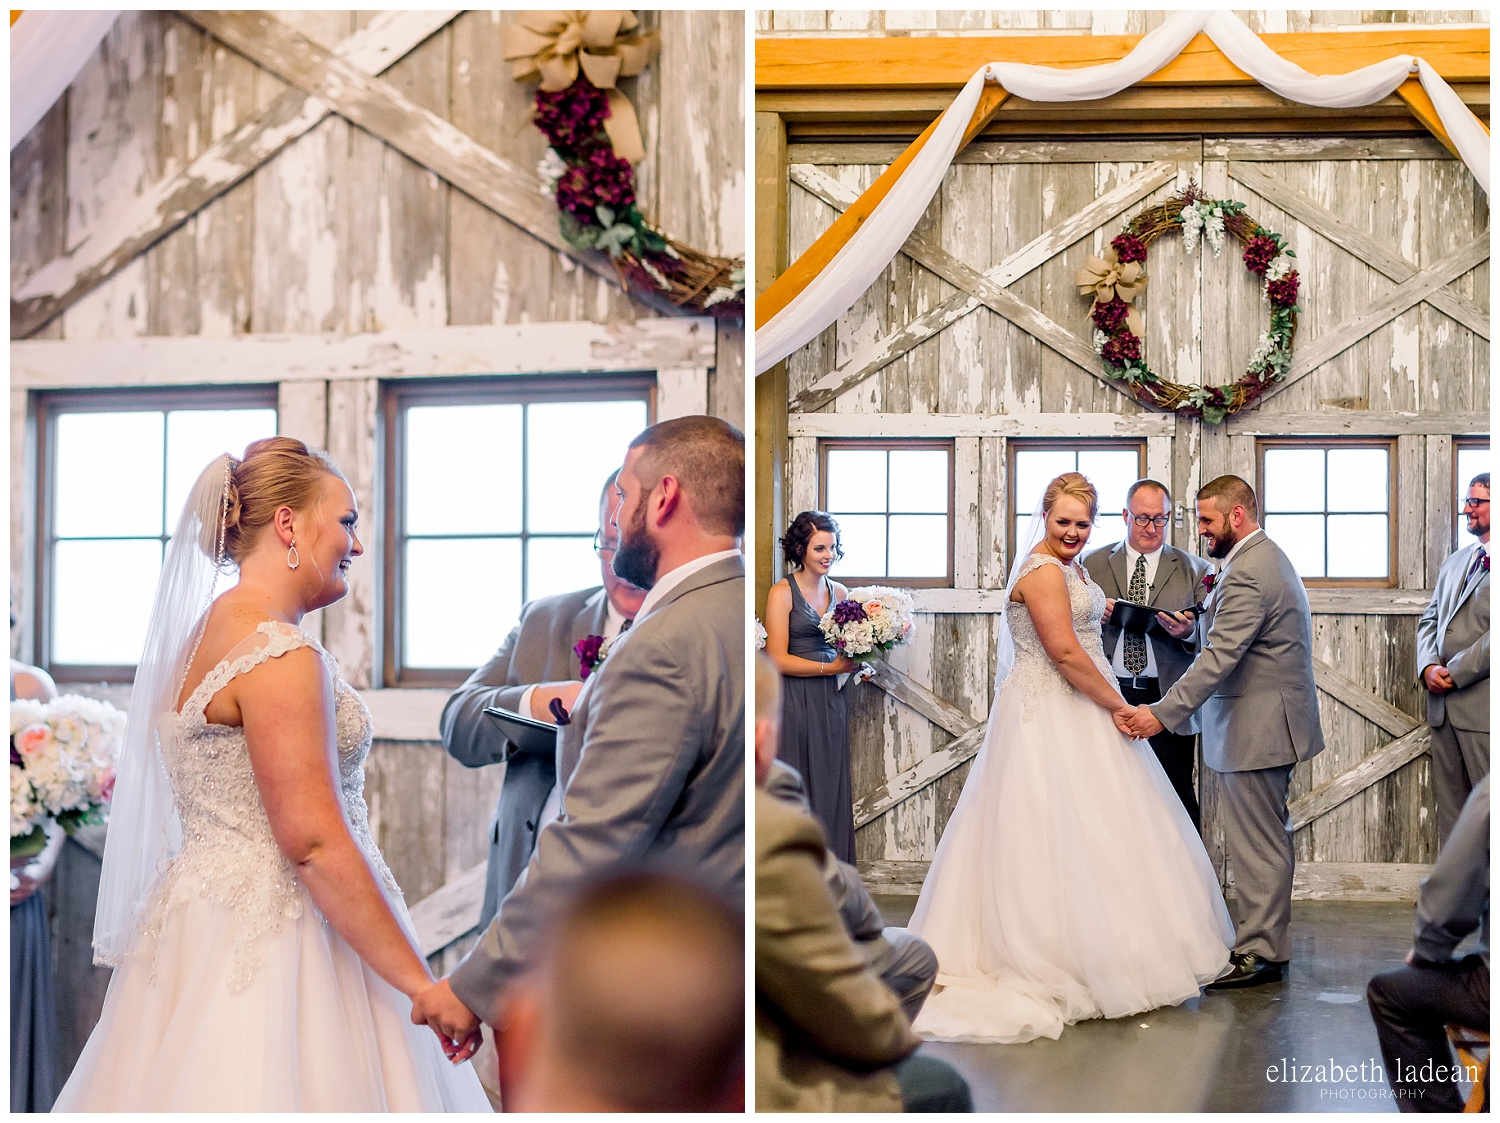 Weston-Timber-Barn-Wedding-Photography-L+A-elizabeth-ladean0photo_1891.jpg